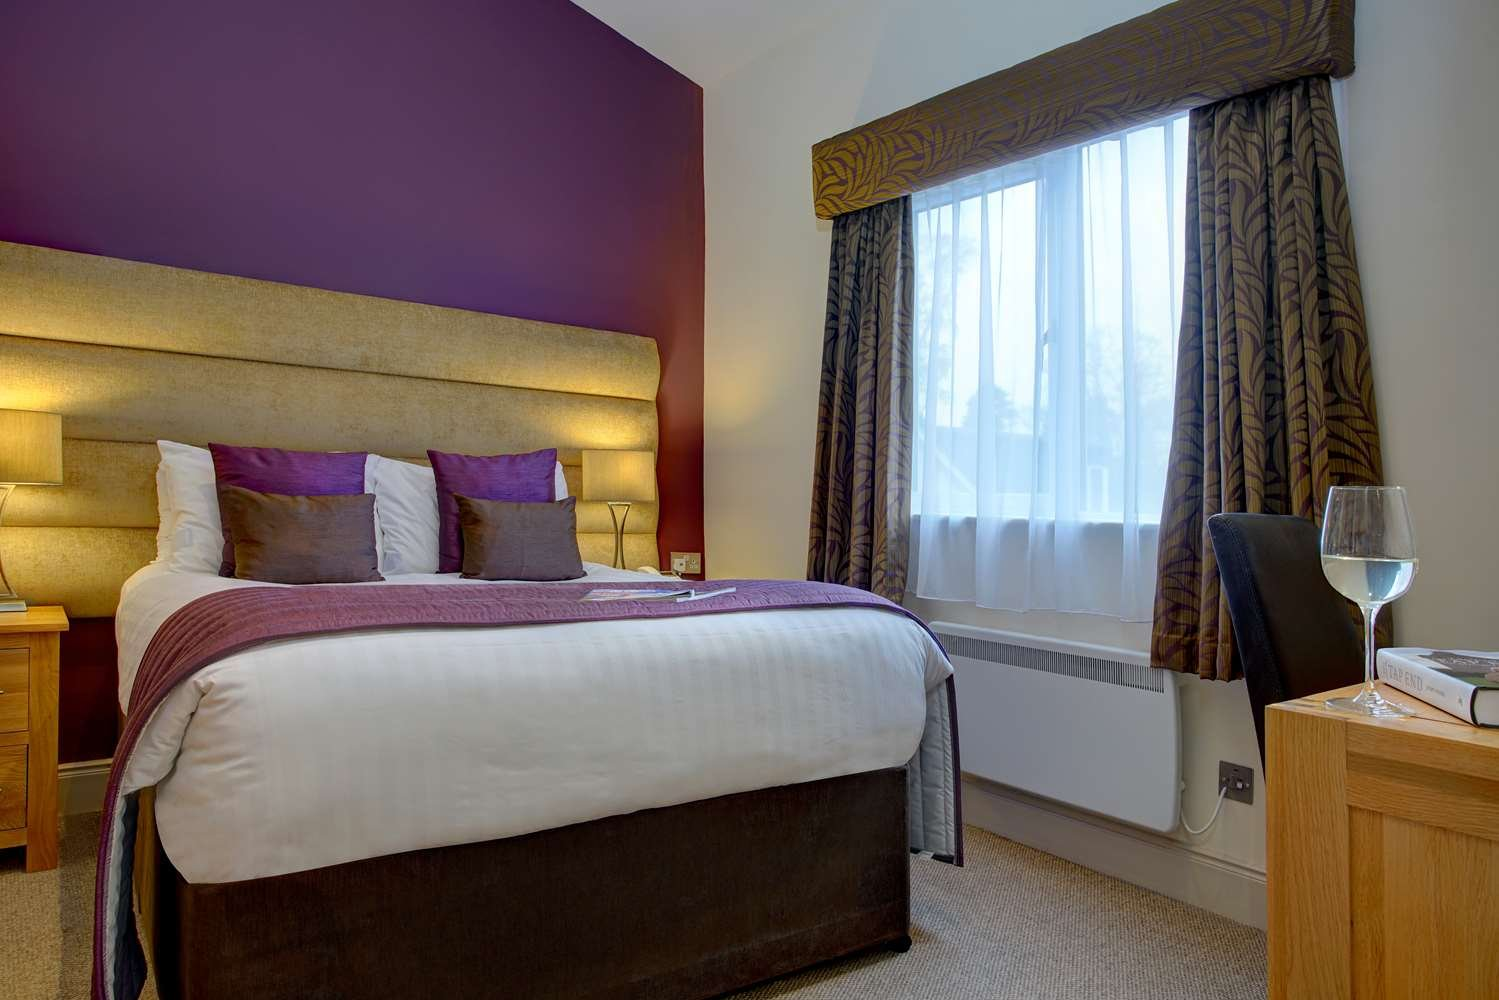 Best Western Plus Scottish Borders, Selkirk Philipburn Hotel | Linglie Road, Selkirk TD7 5LS | +44 1750 20747